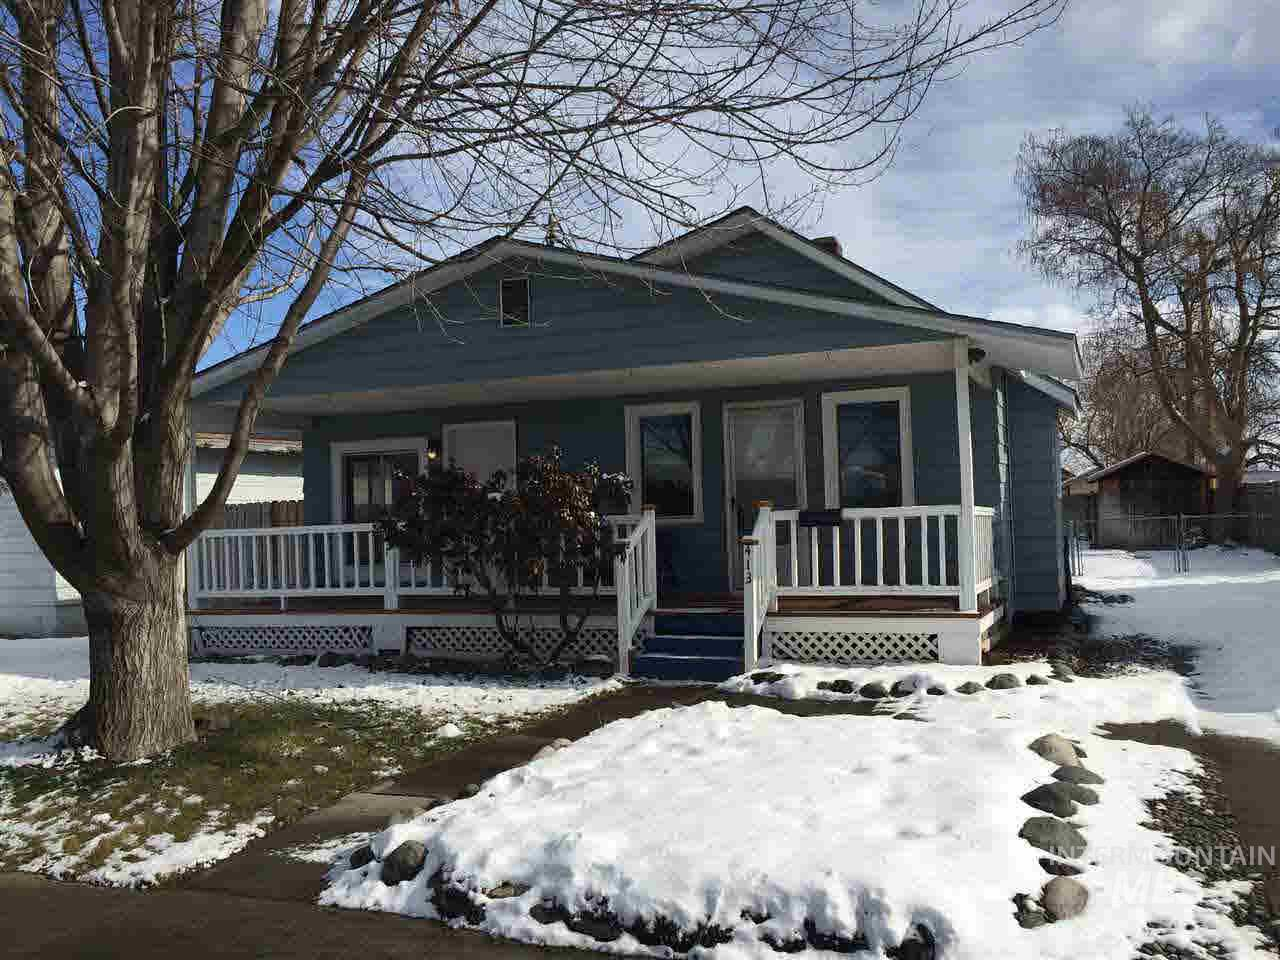 413 7th Street, Clarkston, Washington 99403, 2 Bedrooms, 2 Bathrooms, Residential For Sale, Price $157,000, 314738